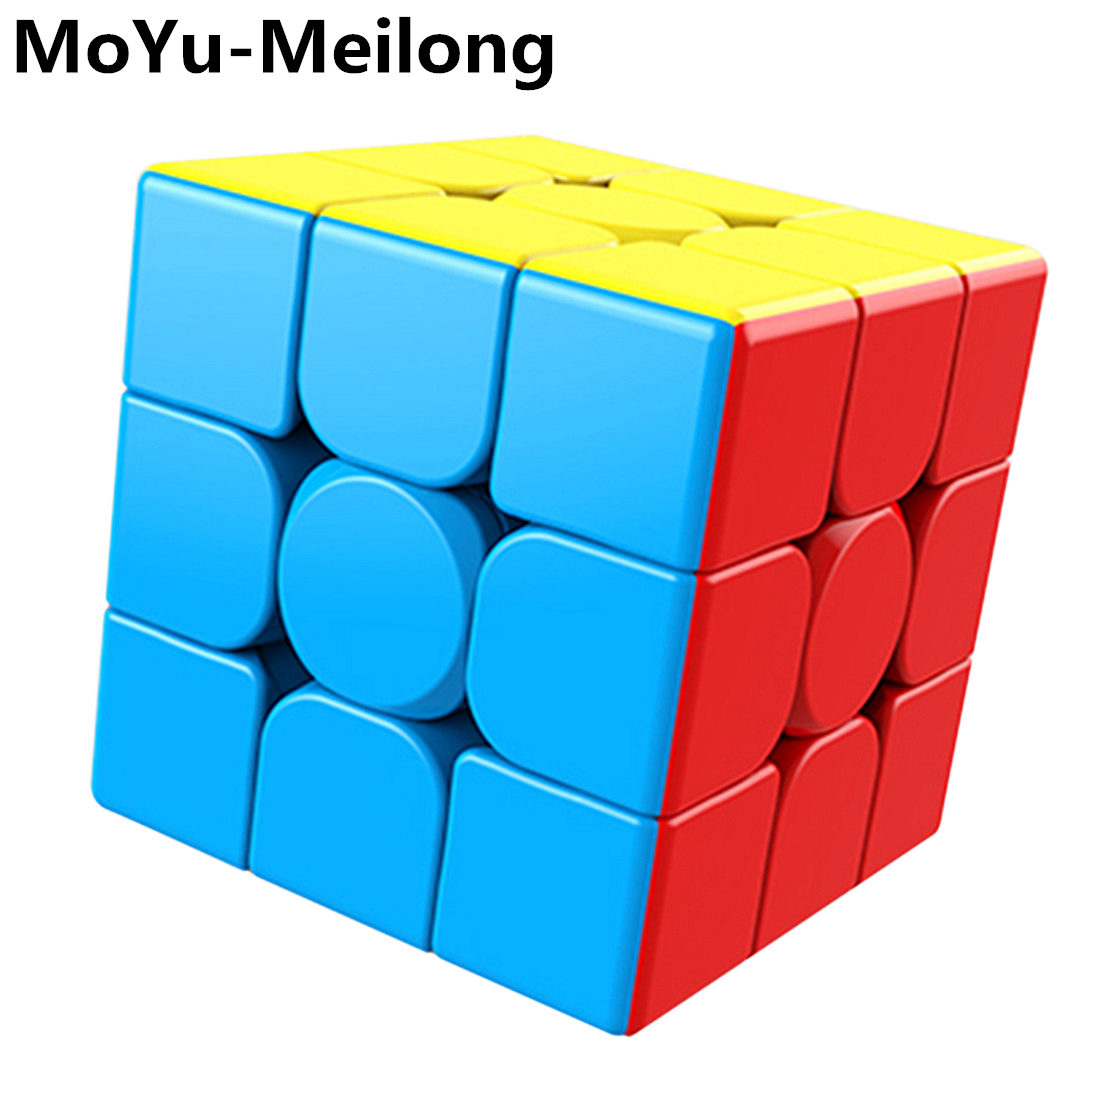 MoYu 3x3x3 Meilong Magic Cube Stickerless Puzzle Cubes Professional Speed Cubo Magico Educational Toys For Students